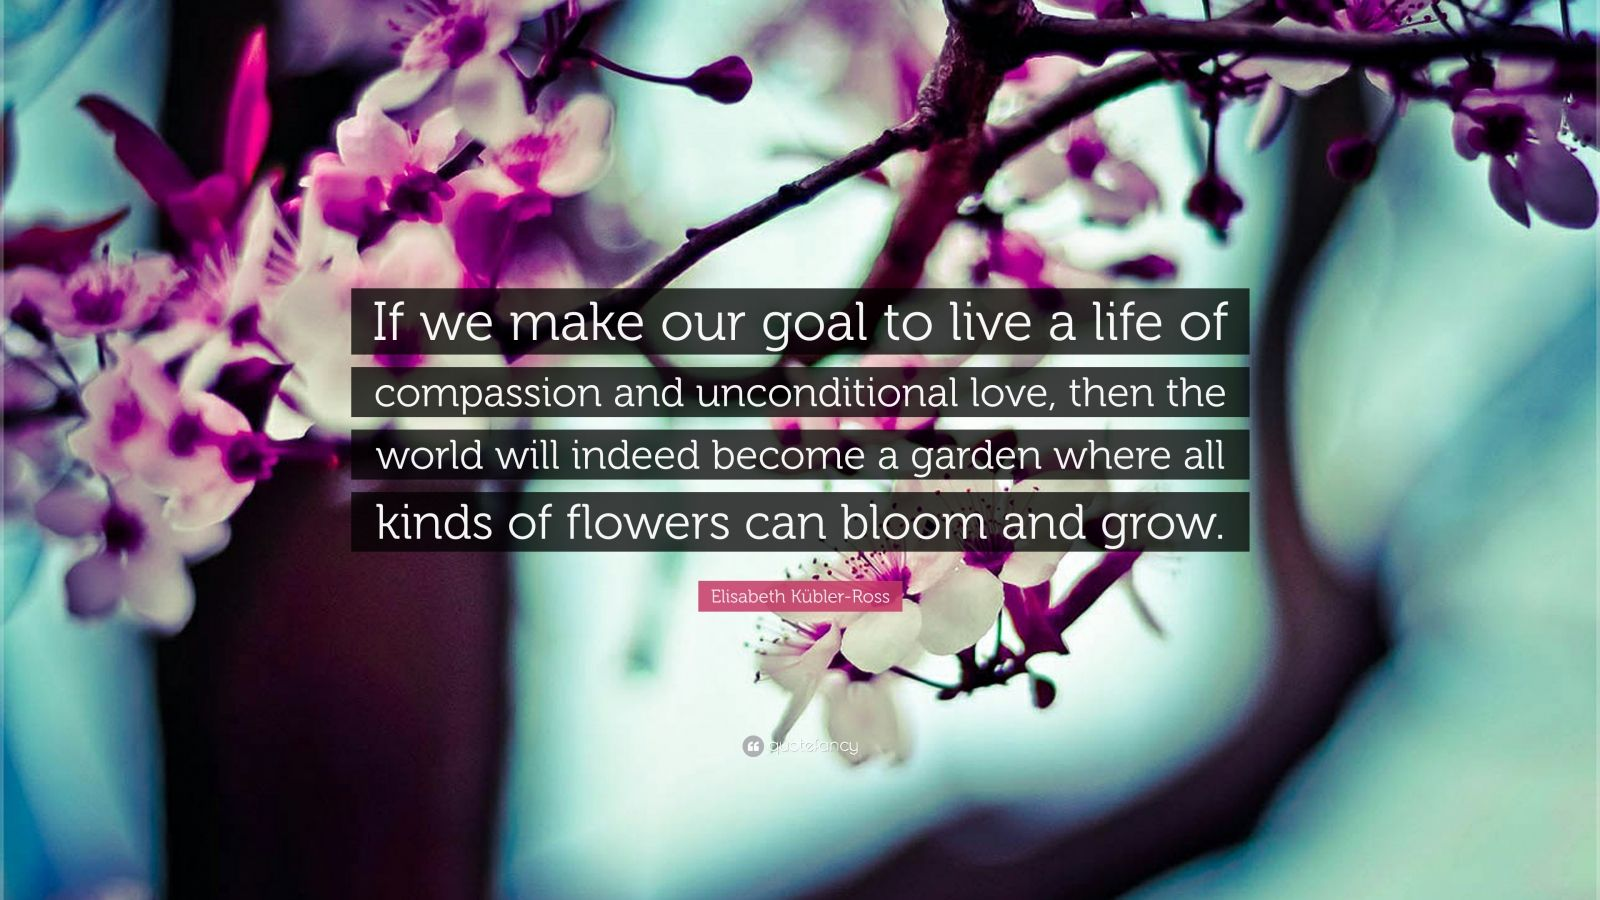 """Elisabeth Kübler-Ross Quote: """"If we make our goal to live a life of compassion and unconditional love, then the world will indeed become a garden where all kinds of flowers can bloom and grow."""""""